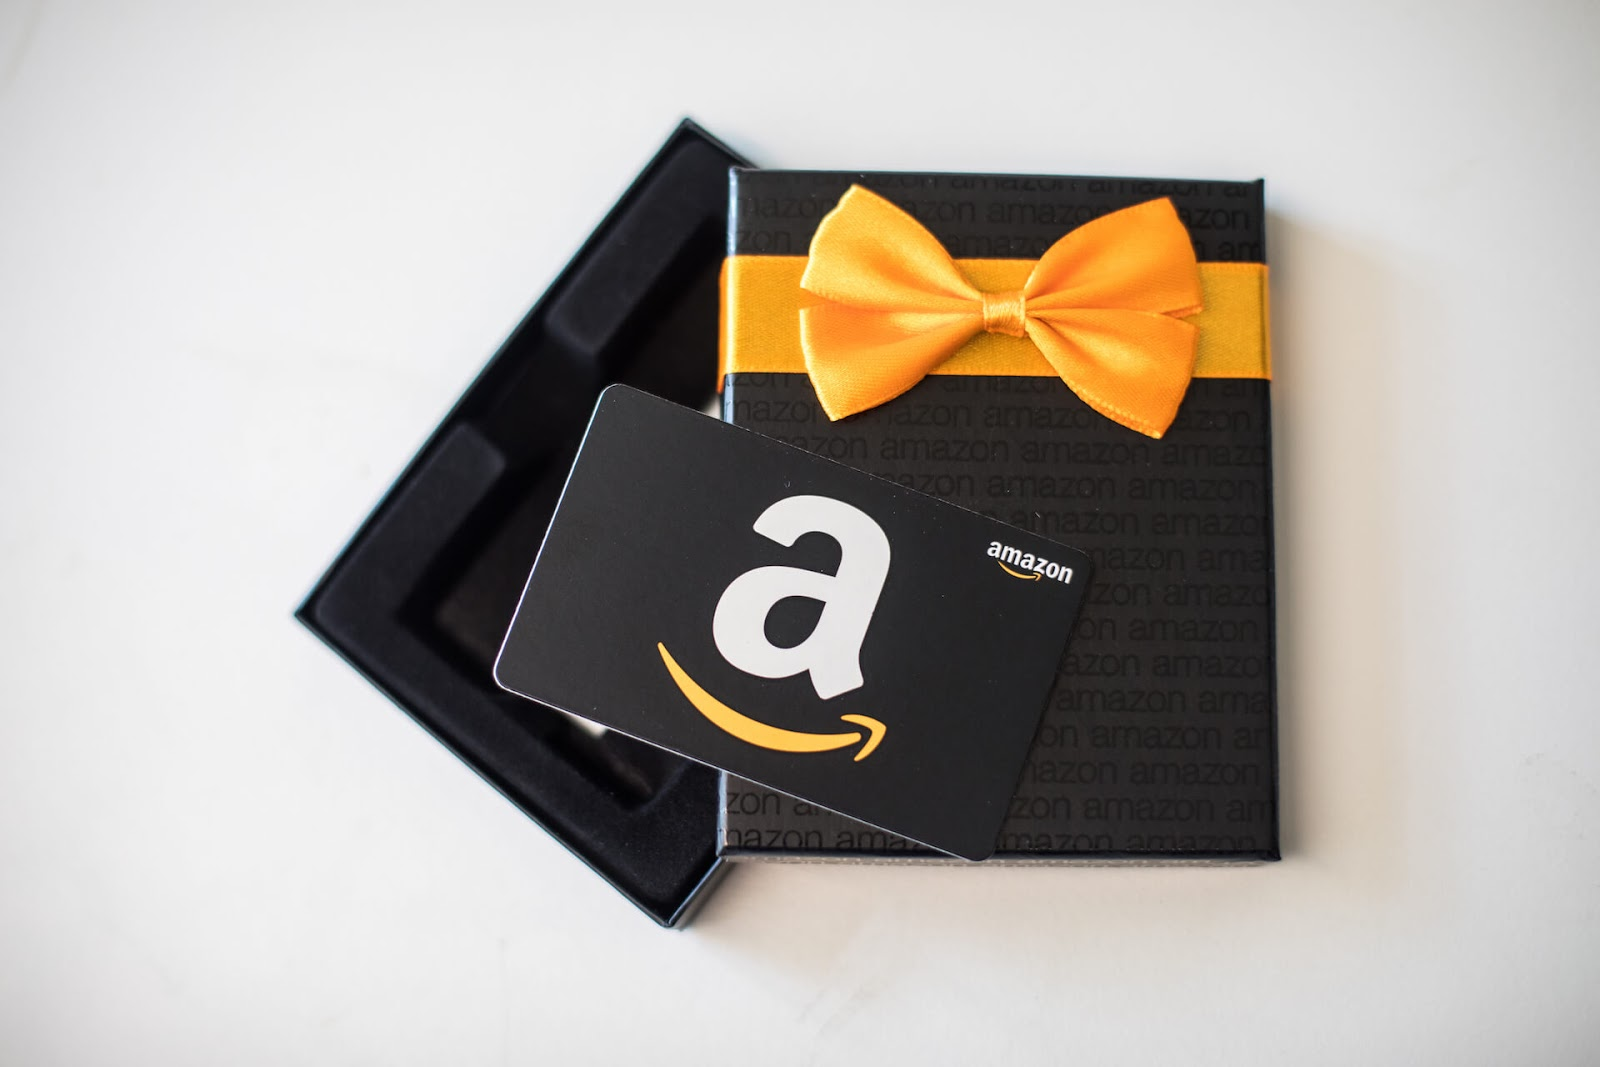 Box with an Amazon gift card in front of it